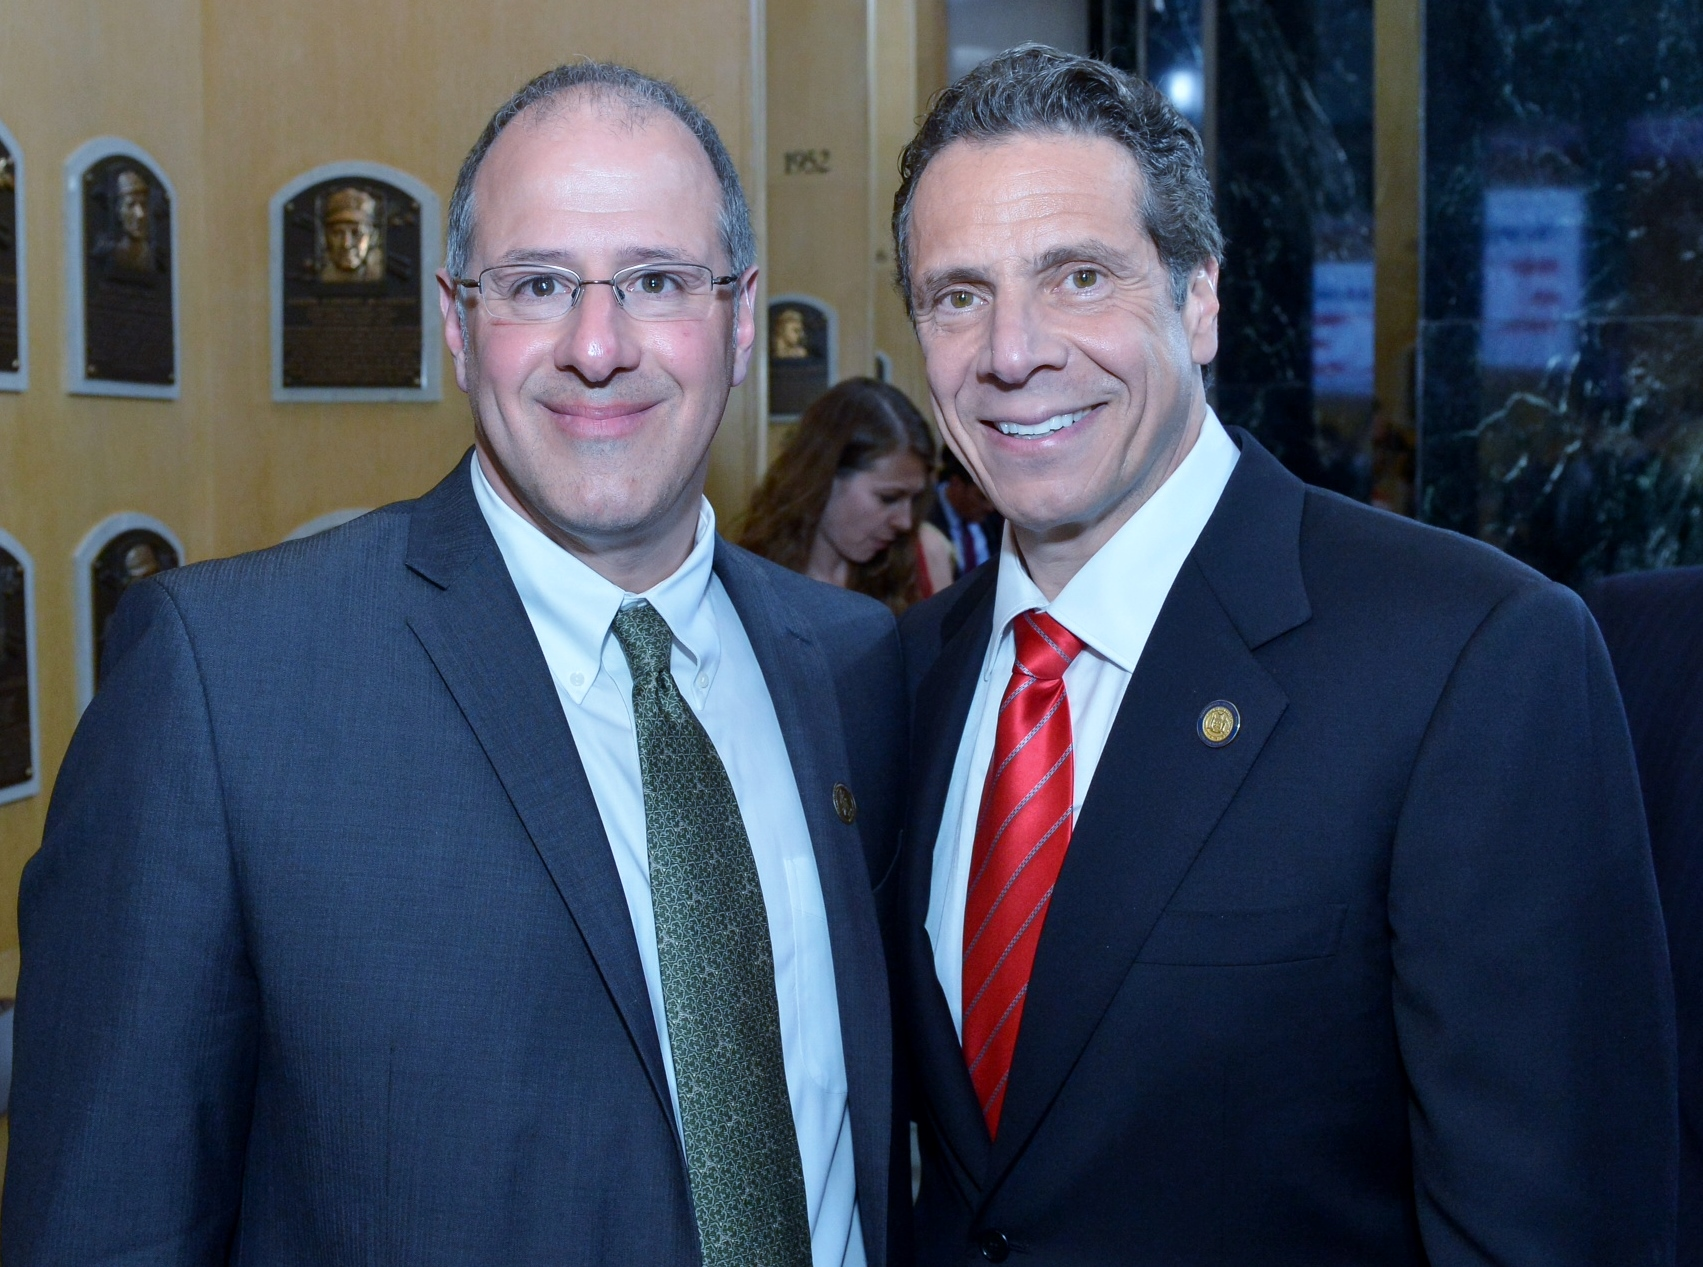 Cooperstown Mayor Jeff Katz, left, with New York Gov. Andrew Cuomo at the National Baseball Hall of Fame and Museum in Cooperstown, N.Y., May 22, 2014. (Courtesy of Jeff Katz)